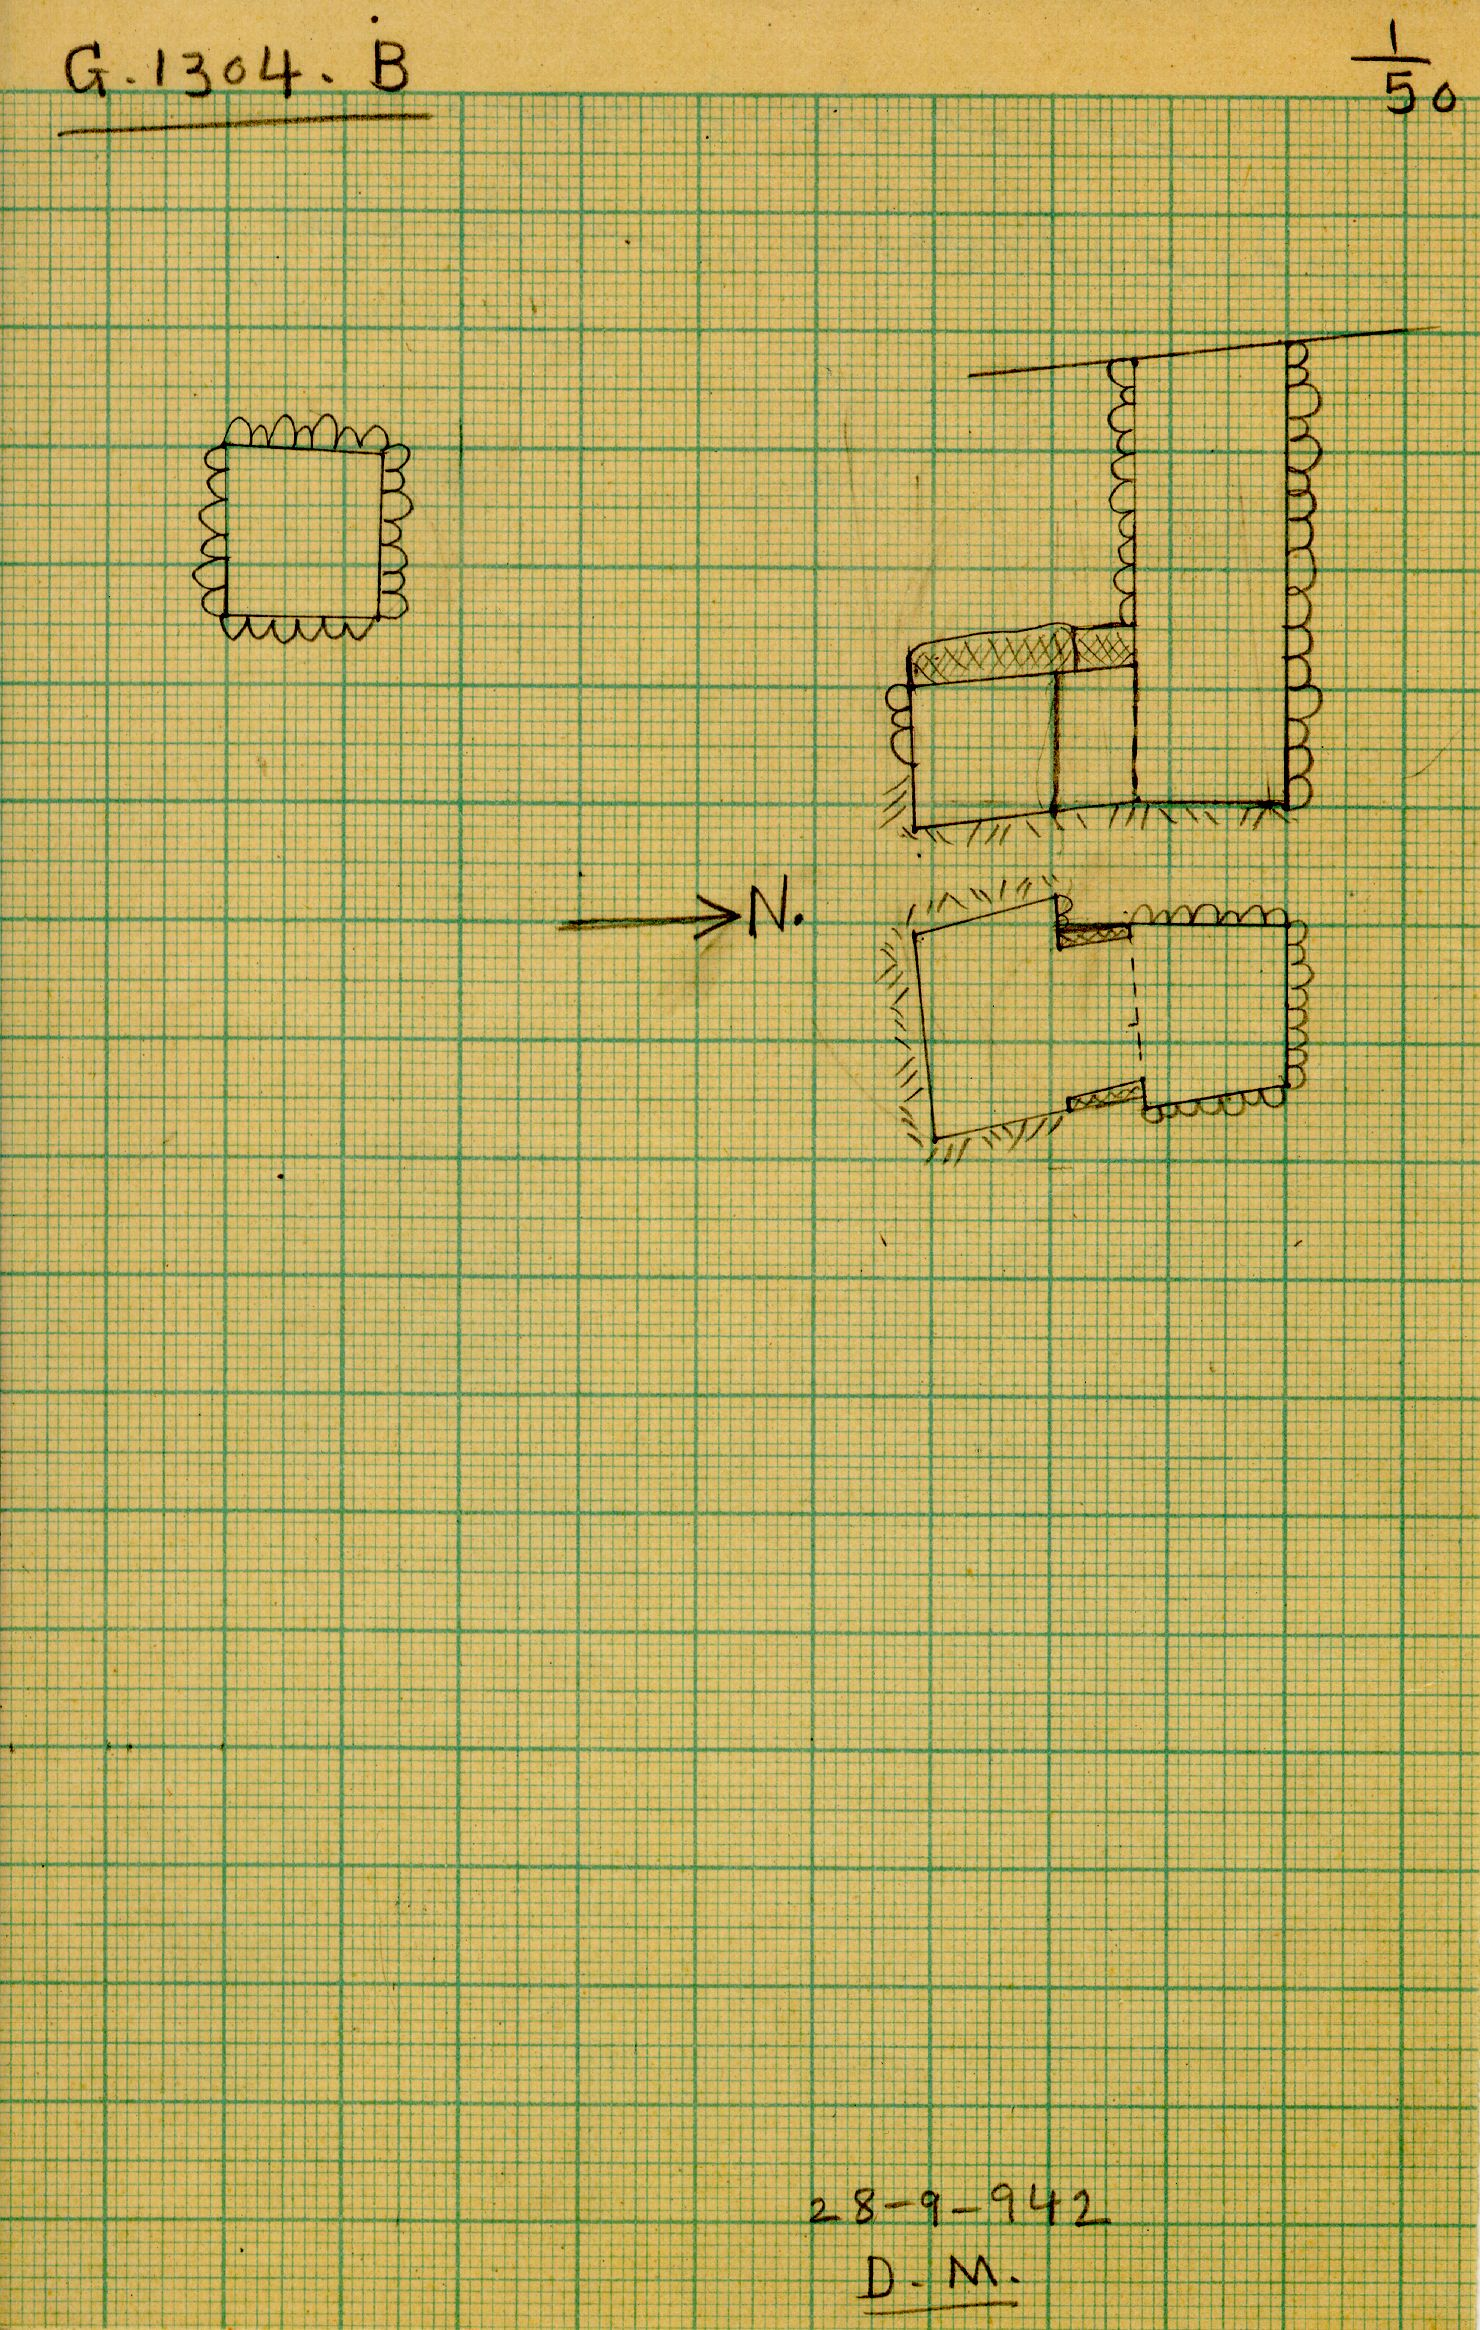 Maps and plans: G 1304, Shaft B